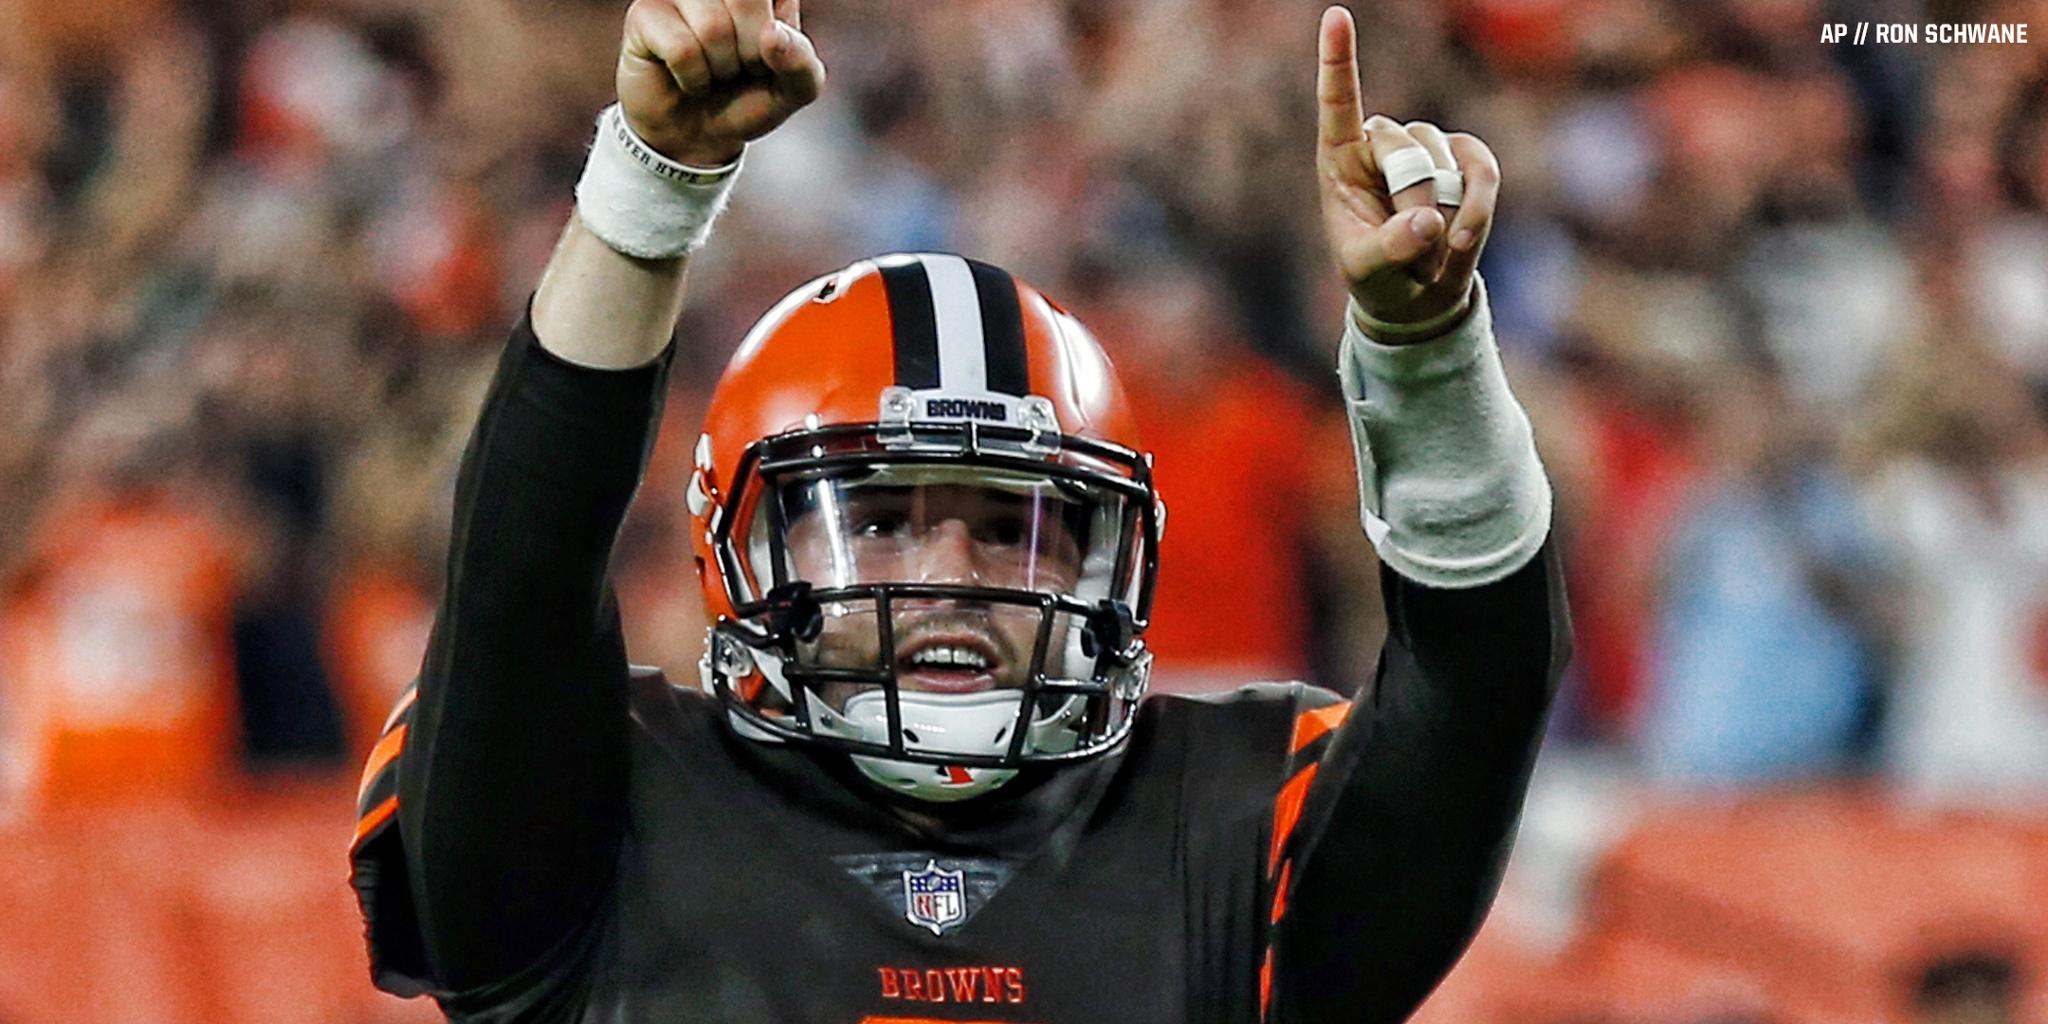 'It's just the beginning.'  QB @bakermayfield takes over as starter » https://t.co/dEXGtATUTP https://t.co/Y0zzZKGBqG